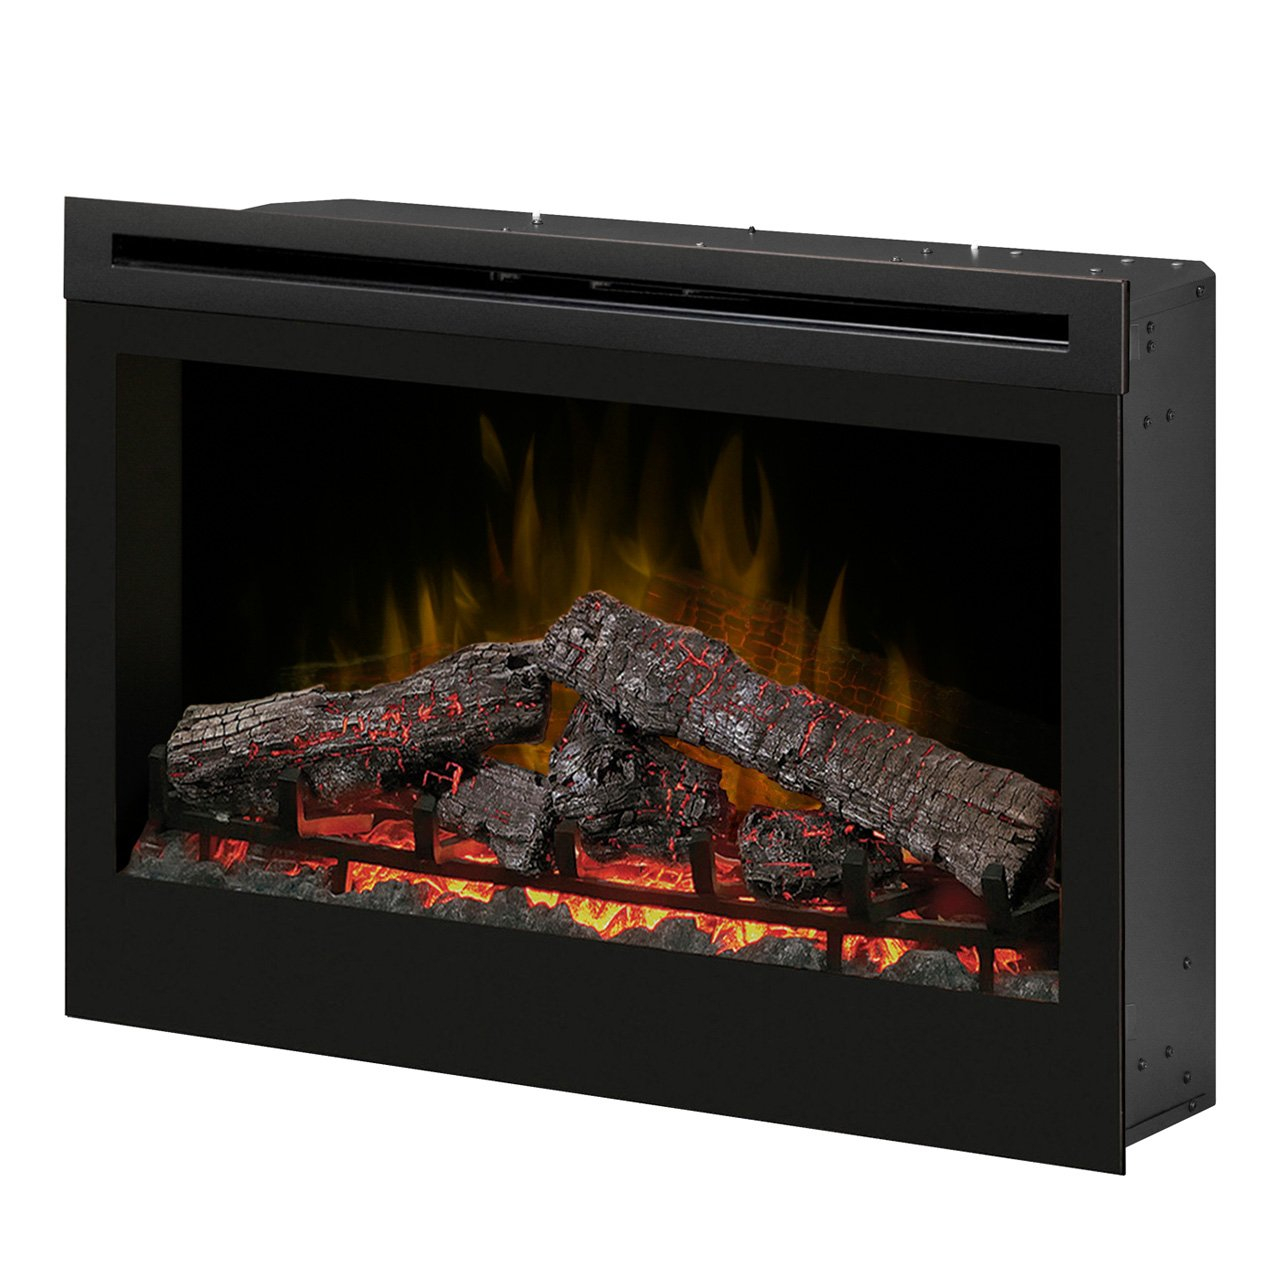 Slim Electric Fireplace New Dimplex Df3033st 33 Inch Self Trimming Electric Fireplace Insert